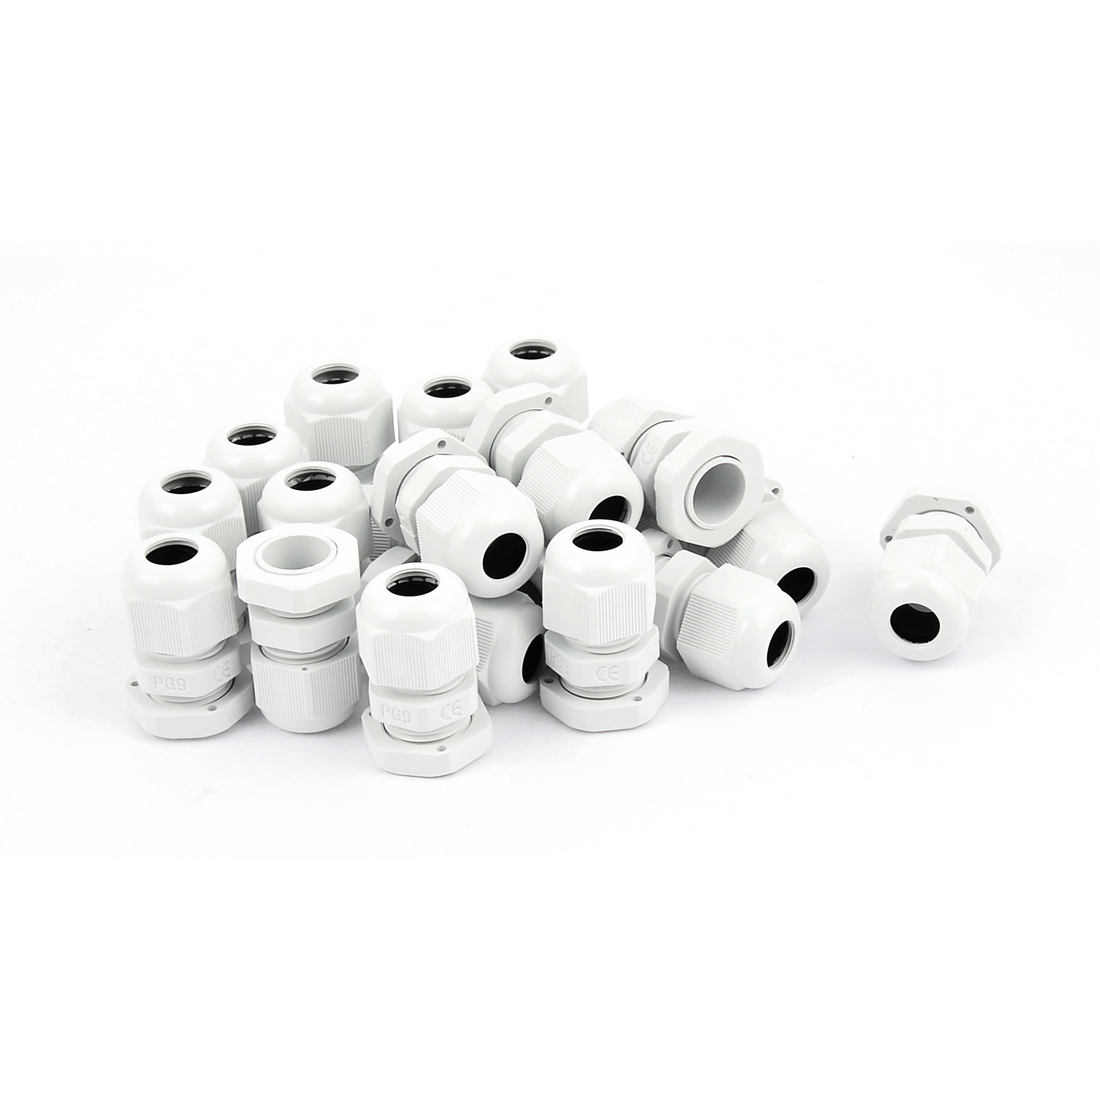 PG-9 White Plastic Waterproof Connectors Cable Glands 20 Pcs